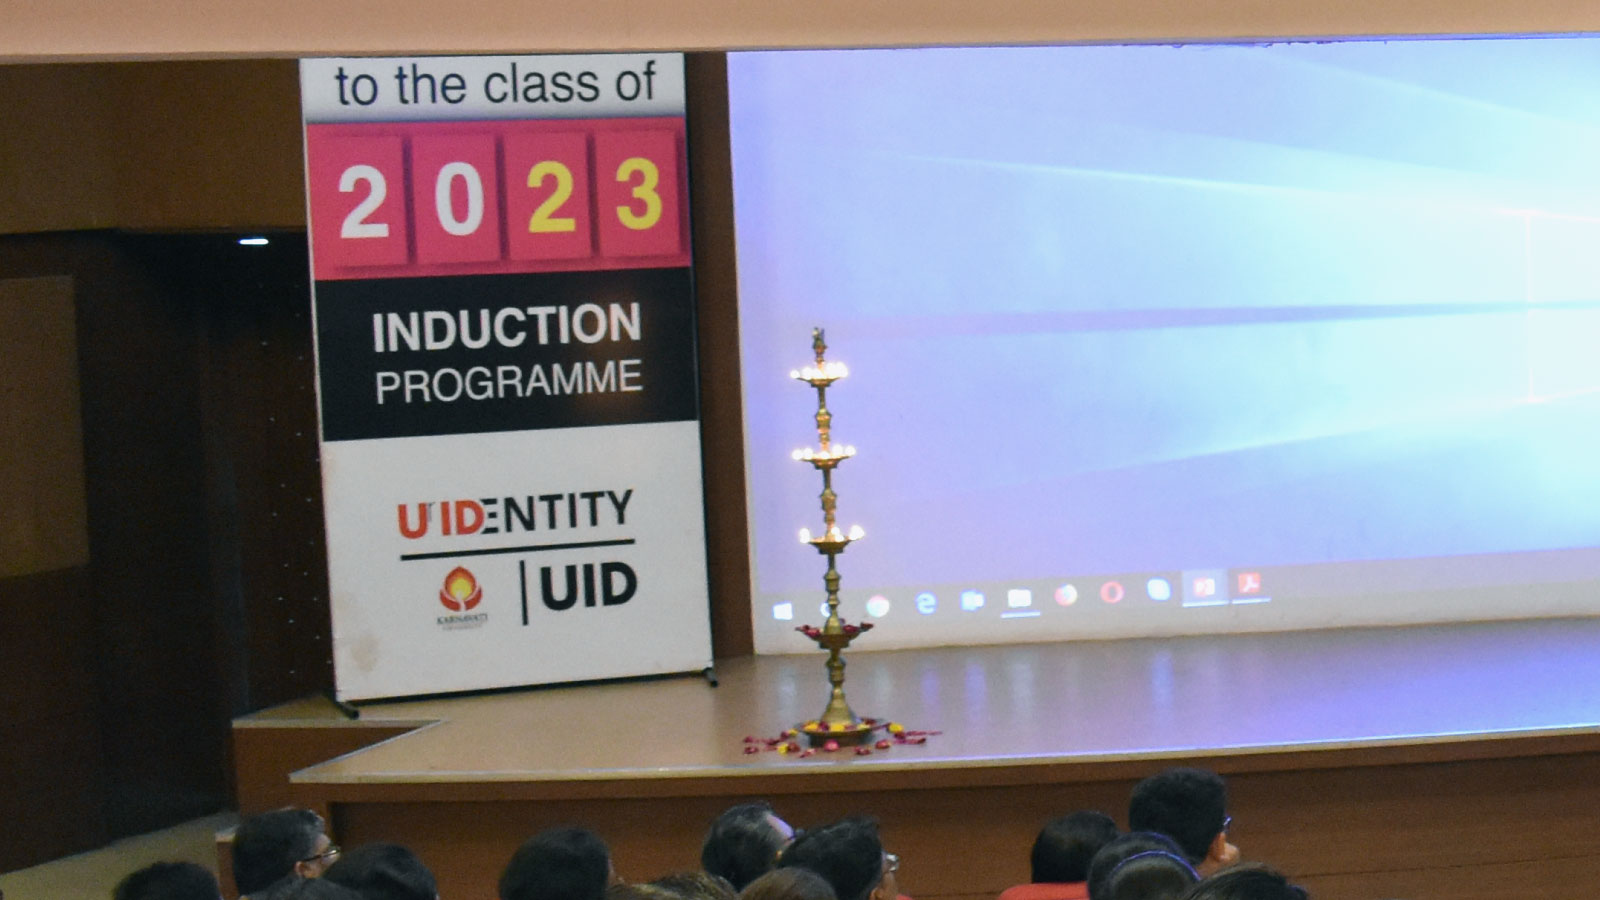 UID Induction Programme B.Des. Image